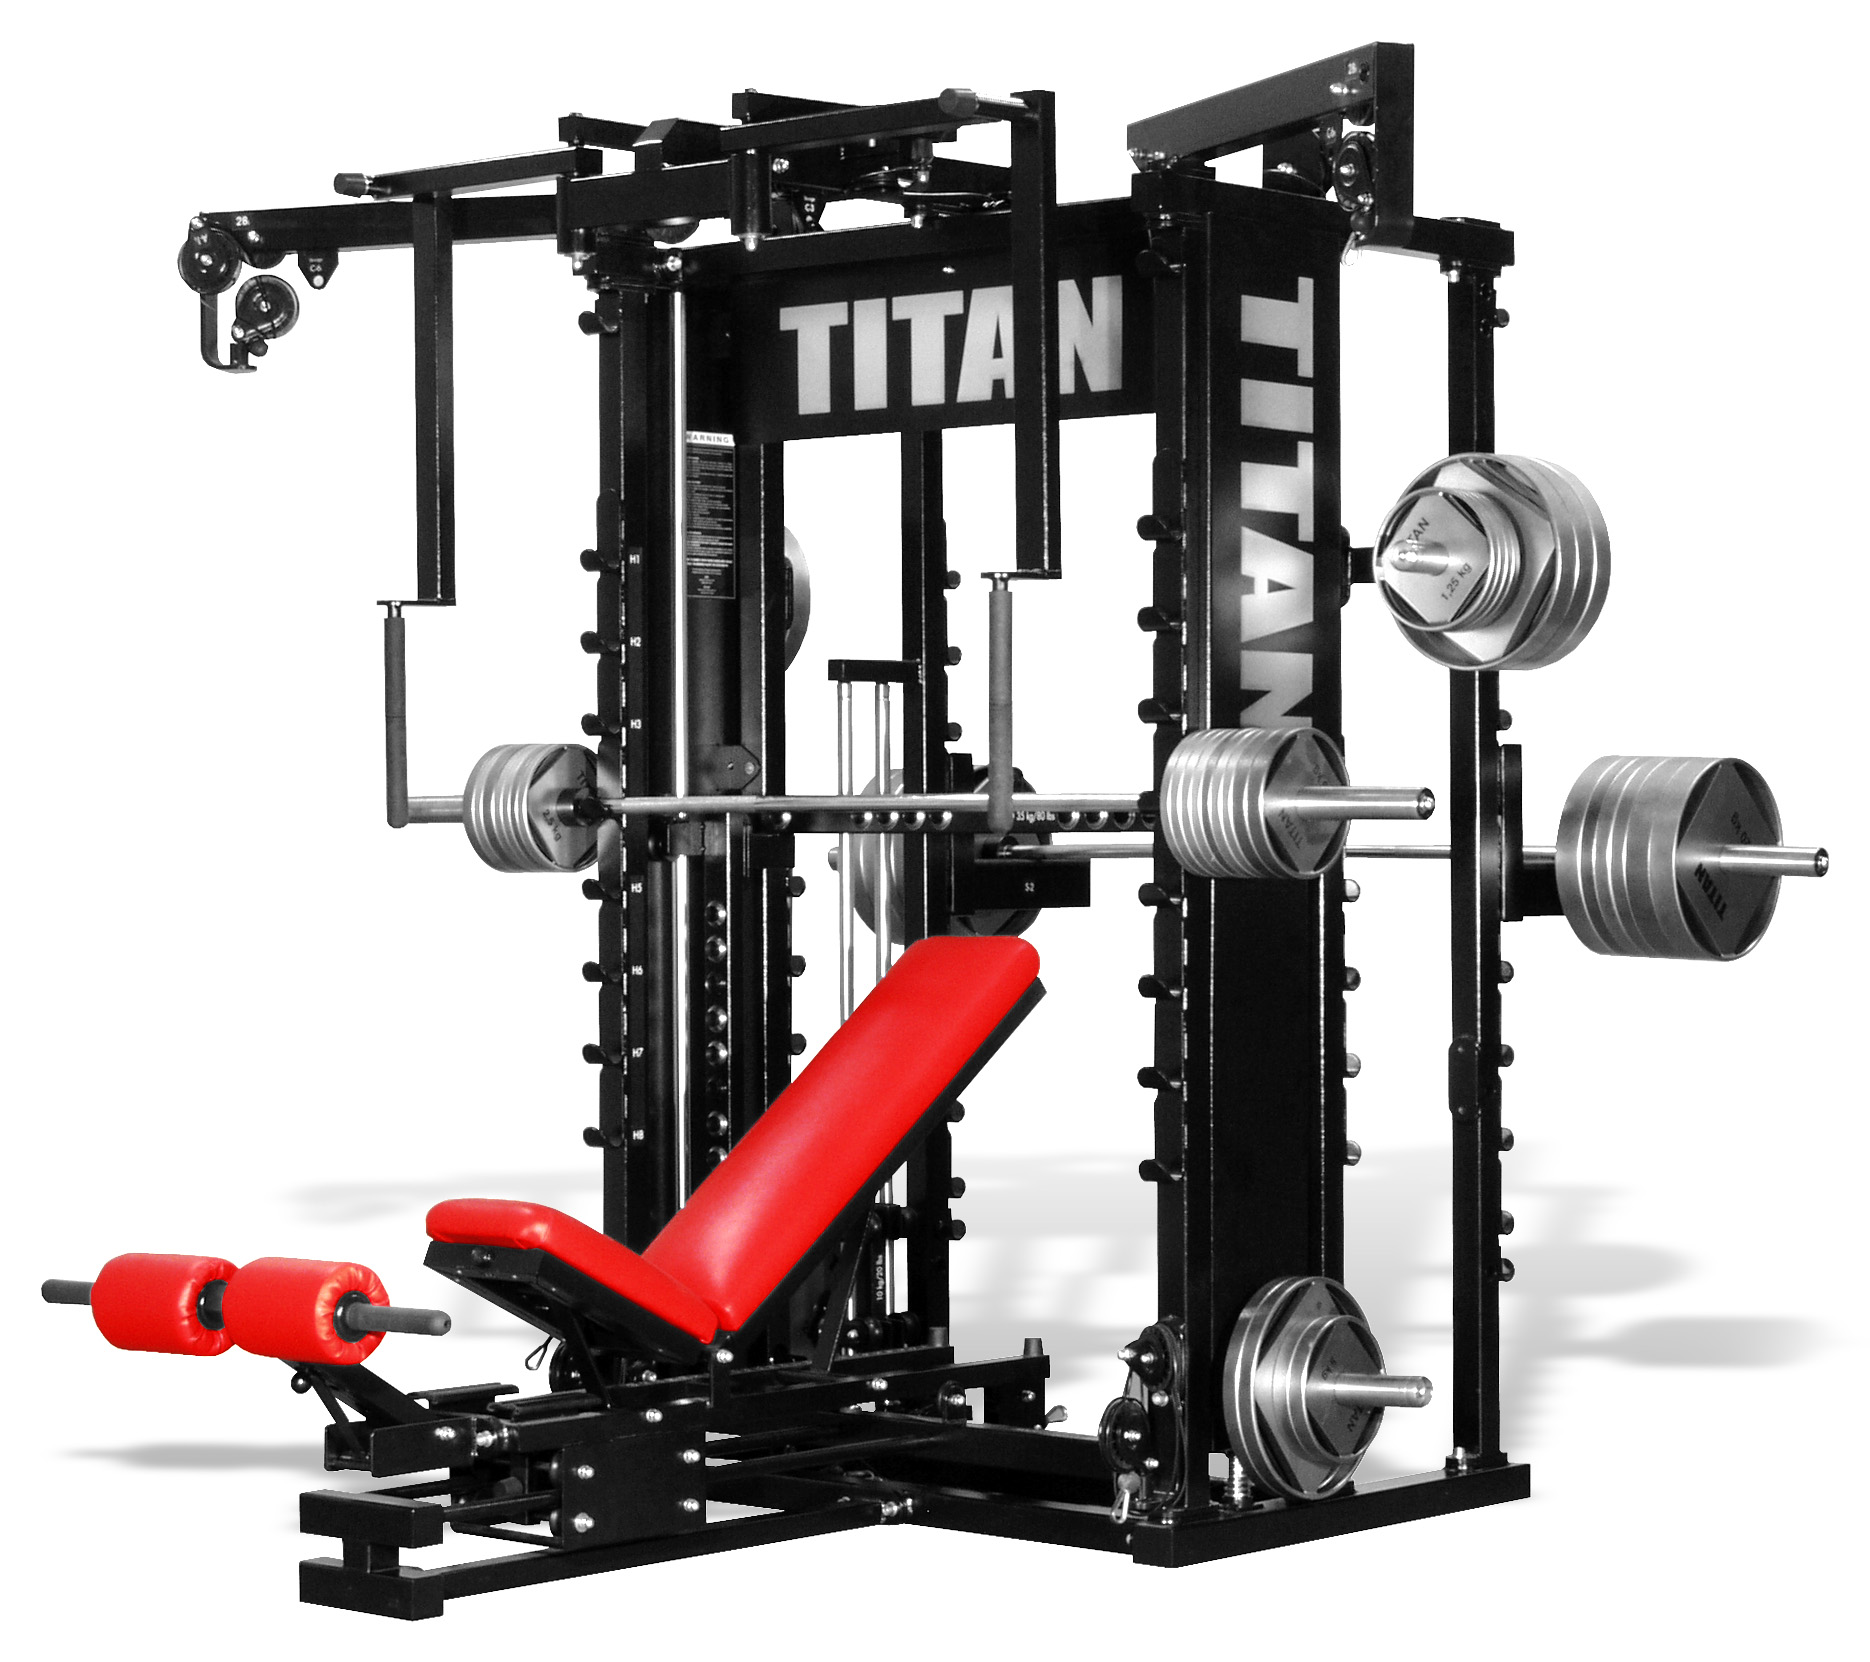 Top Exercise Equipment: Titan T1 / T2 Reviews